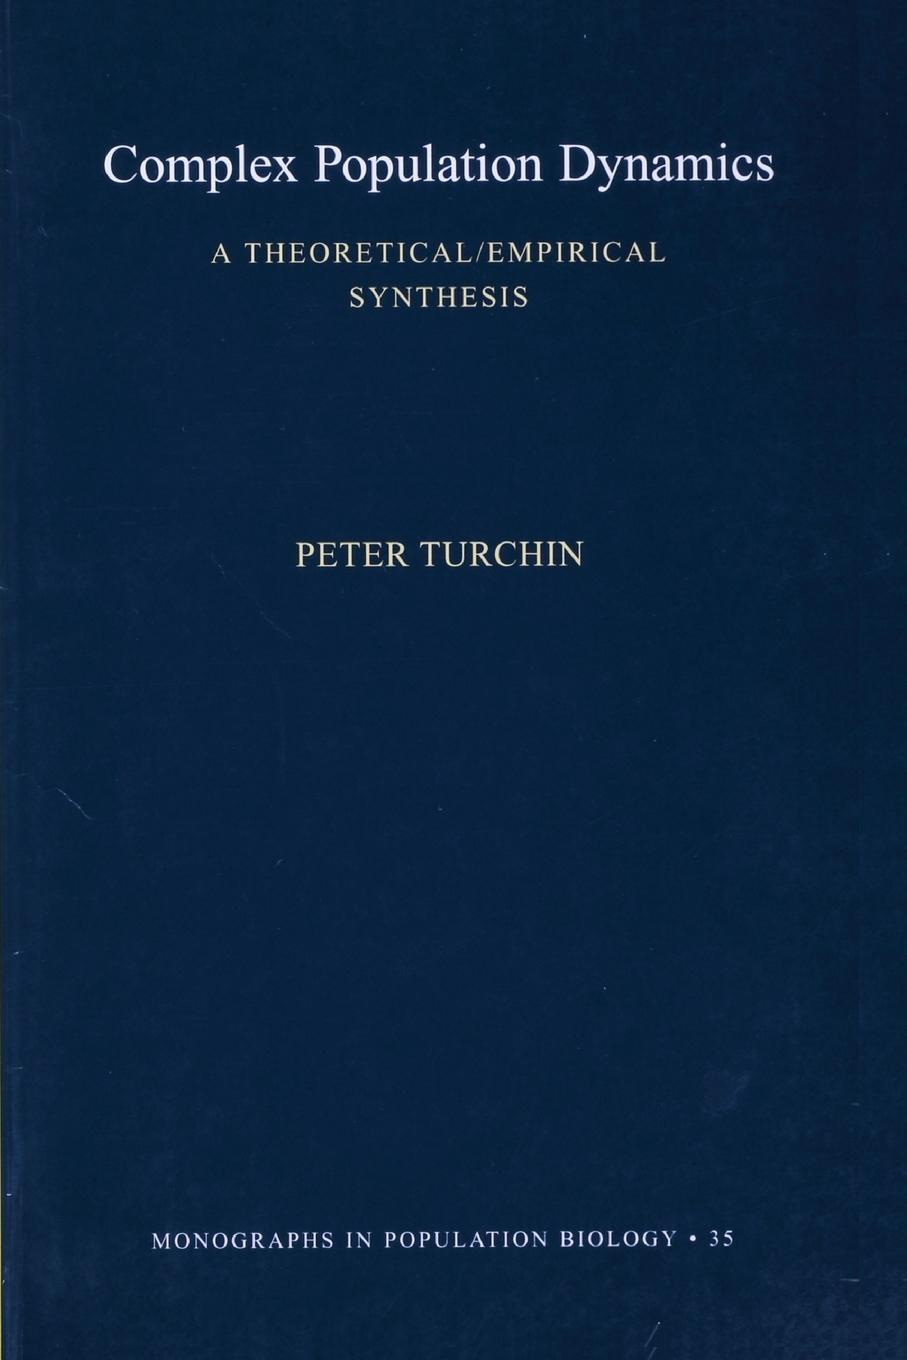 Peter Turchin Complex Population Dynamics. A Theoretical/Empirical Synthesis (MPB-35) jim hone applied population and community ecology the case of feral pigs in australia isbn 9781118329719